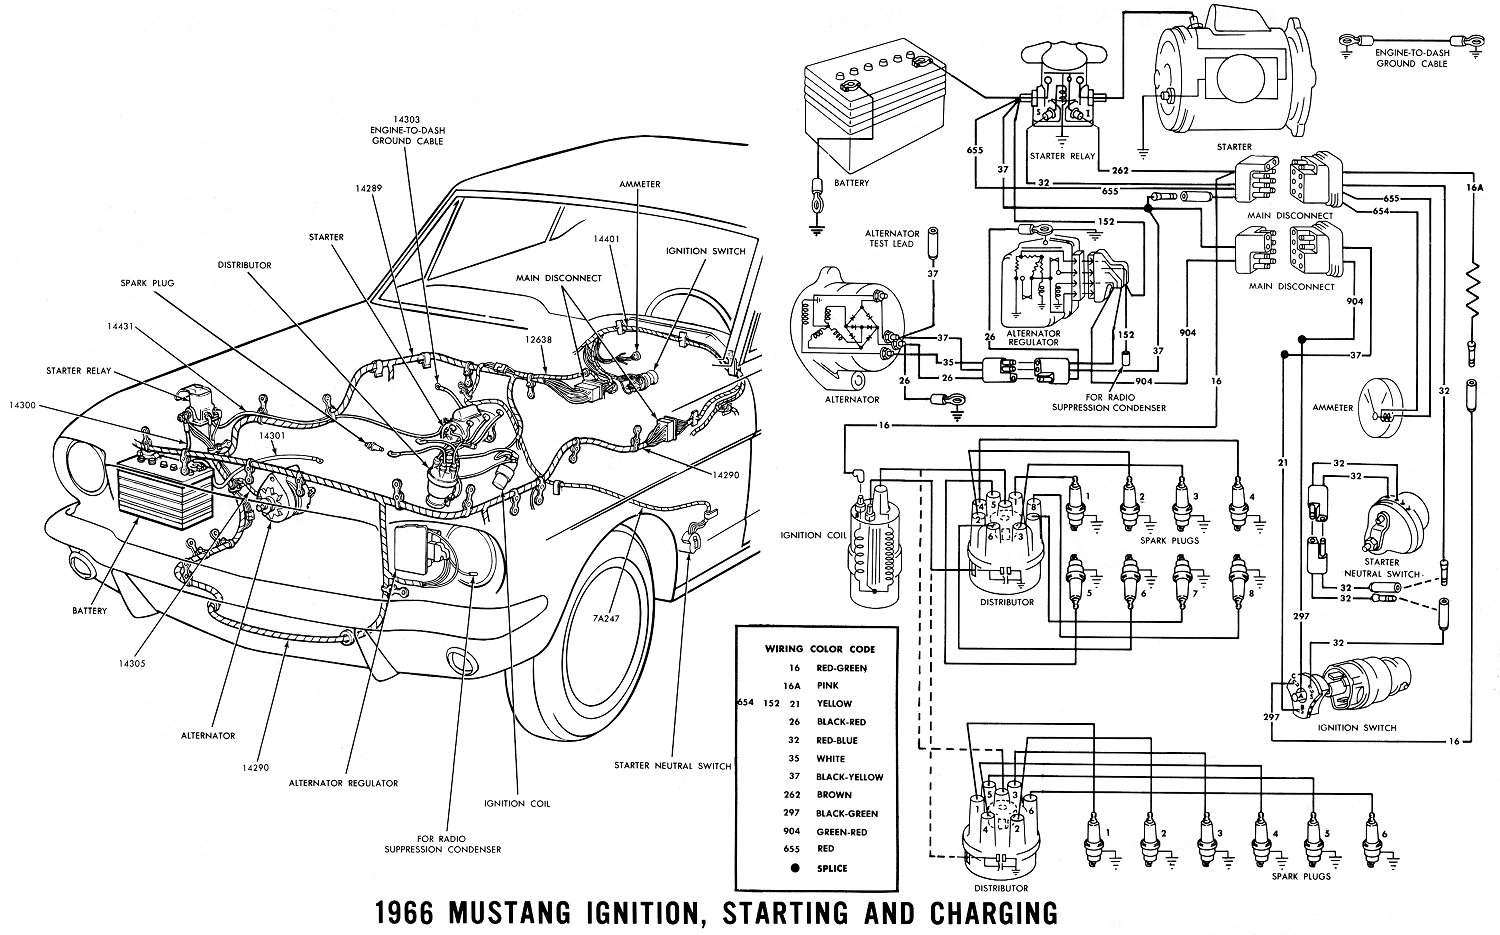 66ignit 1966 mustang wiring diagrams average joe restoration 1965 mustang wiring diagram pdf at edmiracle.co